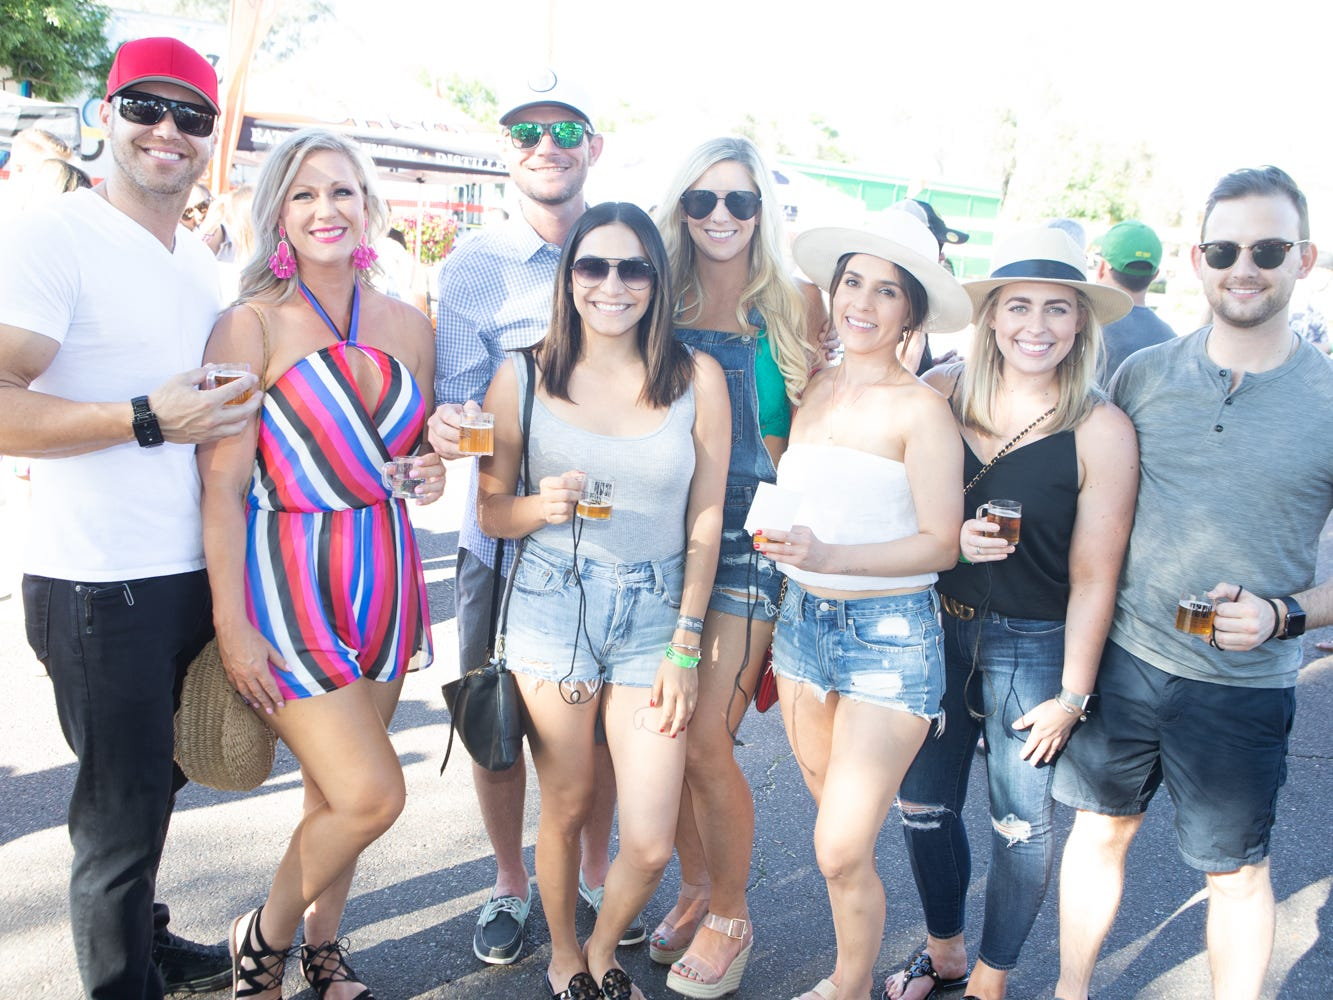 This group had plenty to be happy about at the Scottsdale Culinary Festival on April 13, 2019.